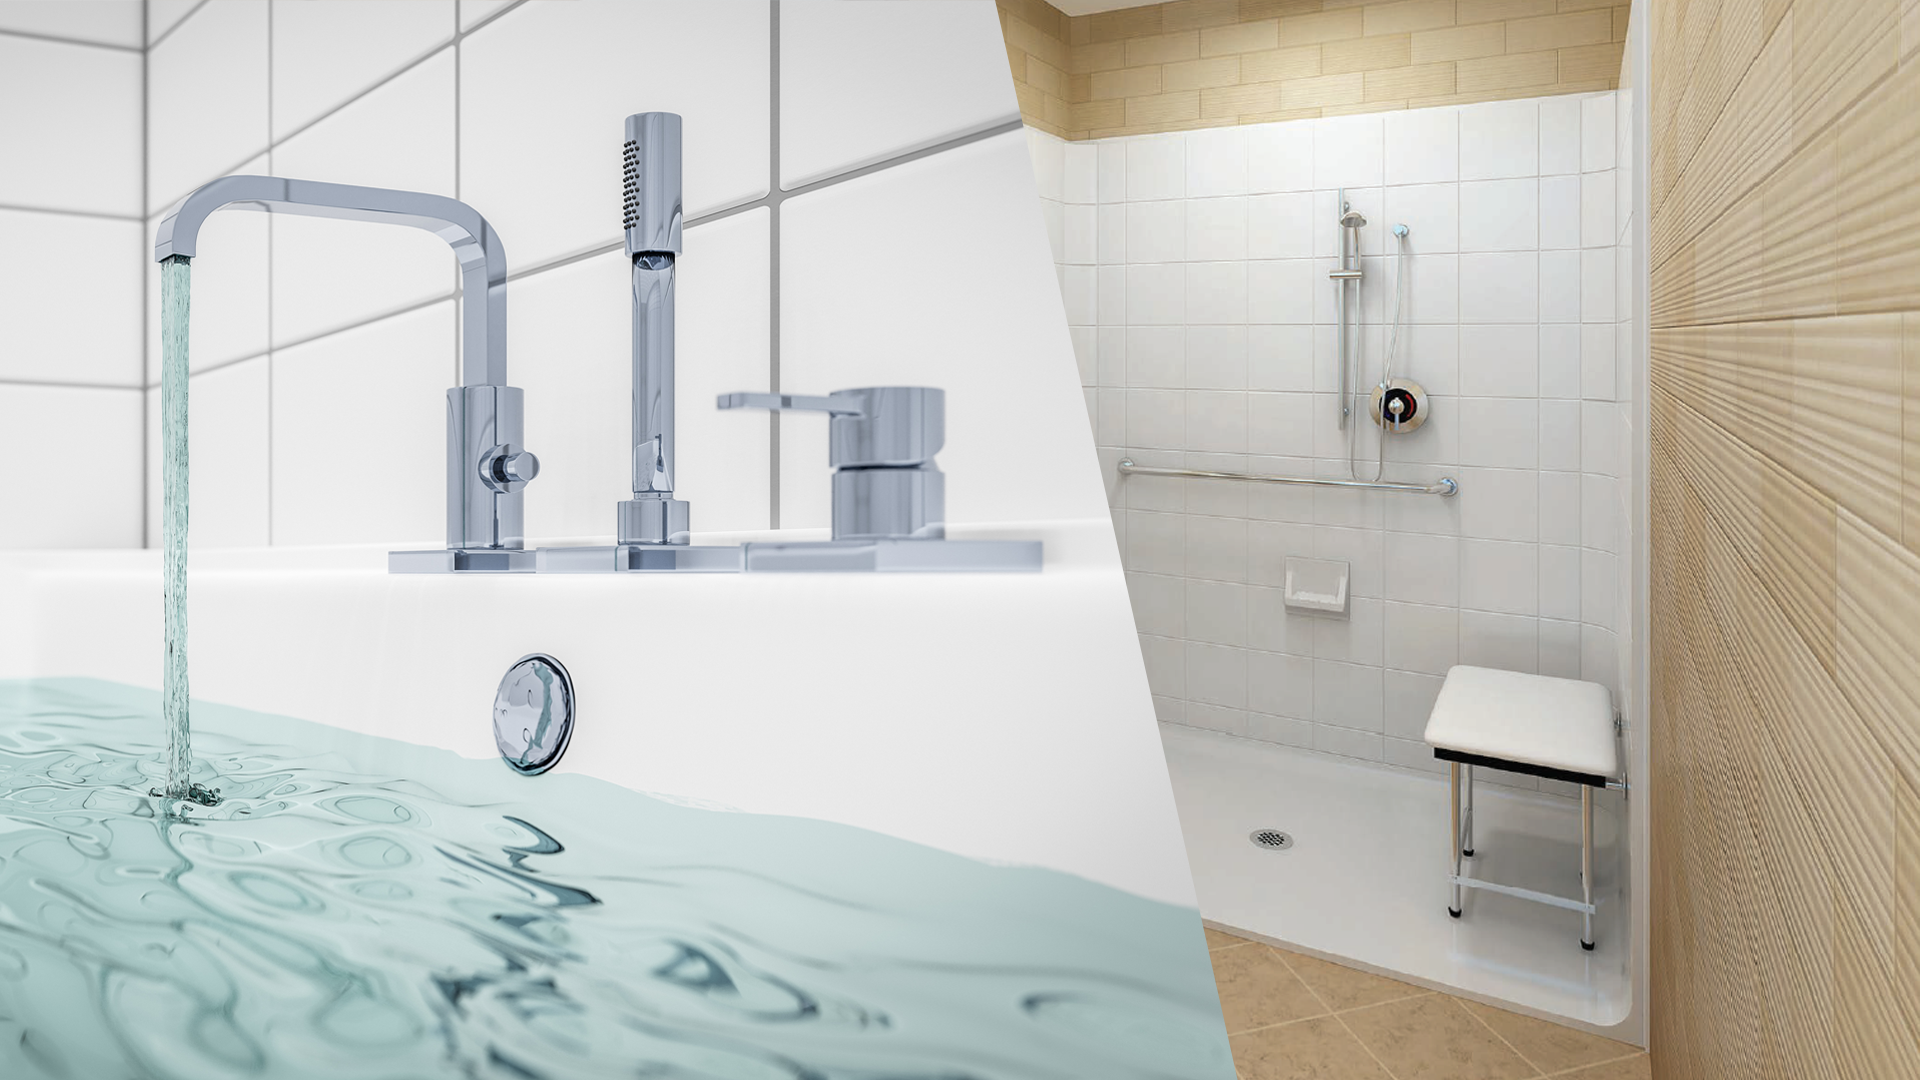 Image spilt between accessible bathtub and accessible shower